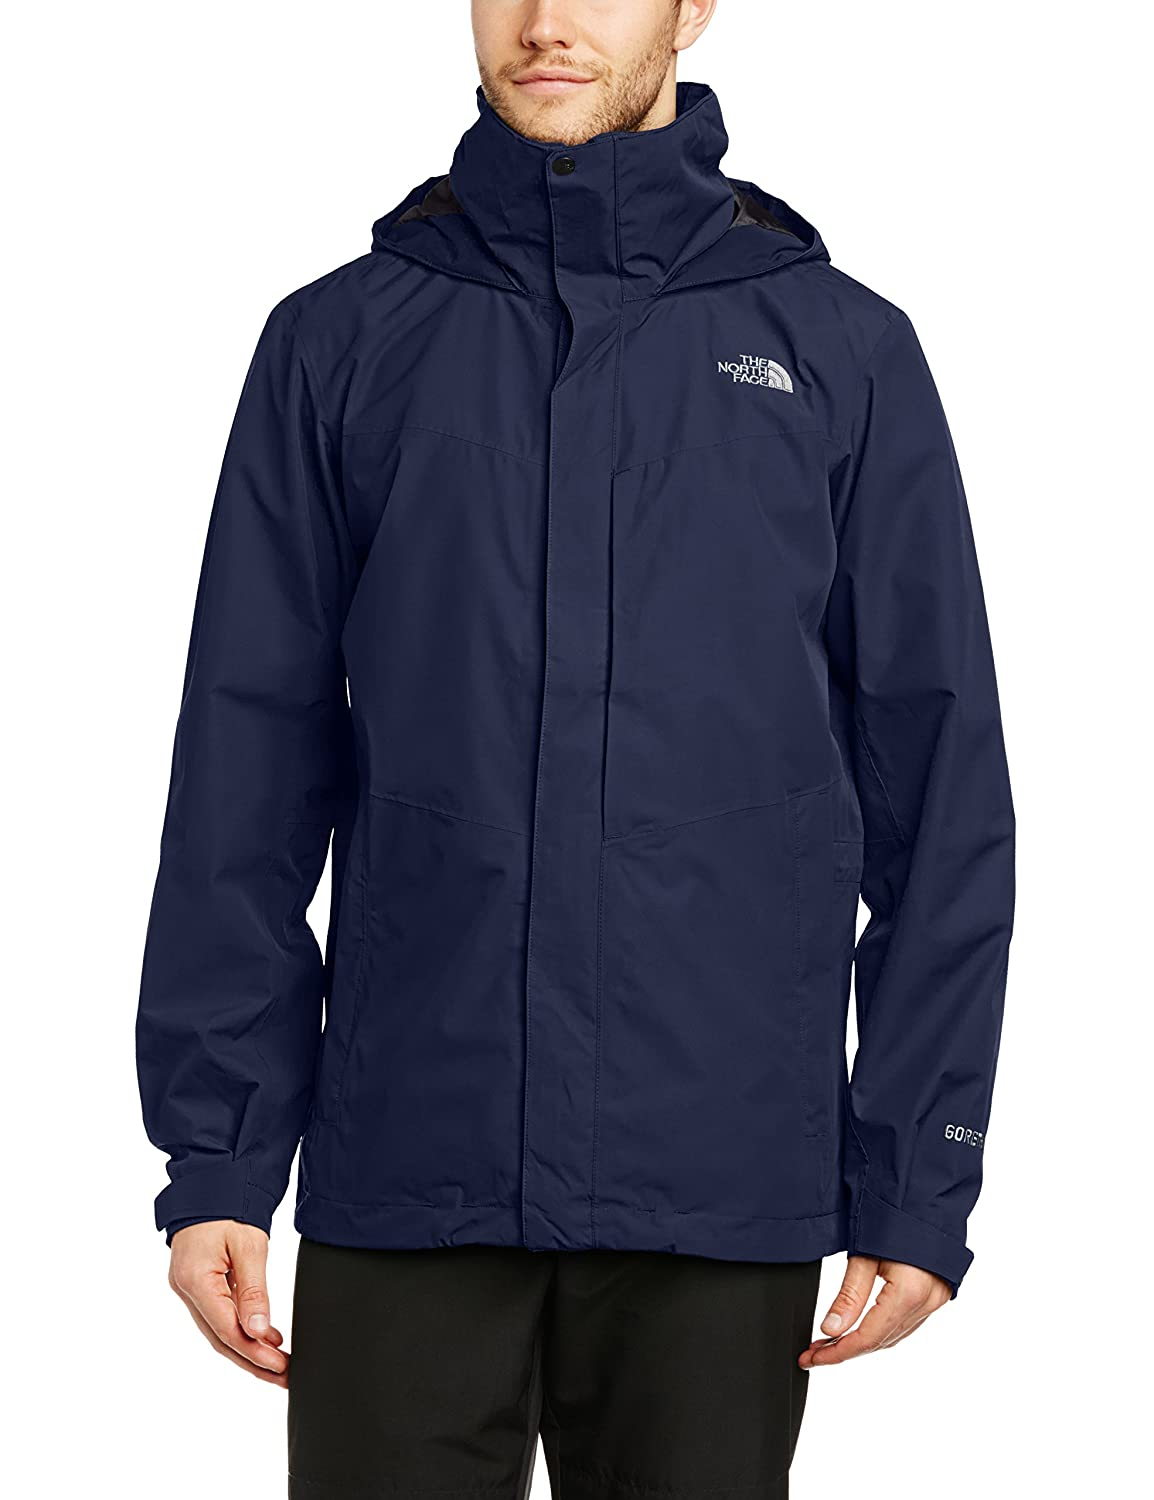 The North Face Herren Jacke All Terrain II Jacket EU online bestellen